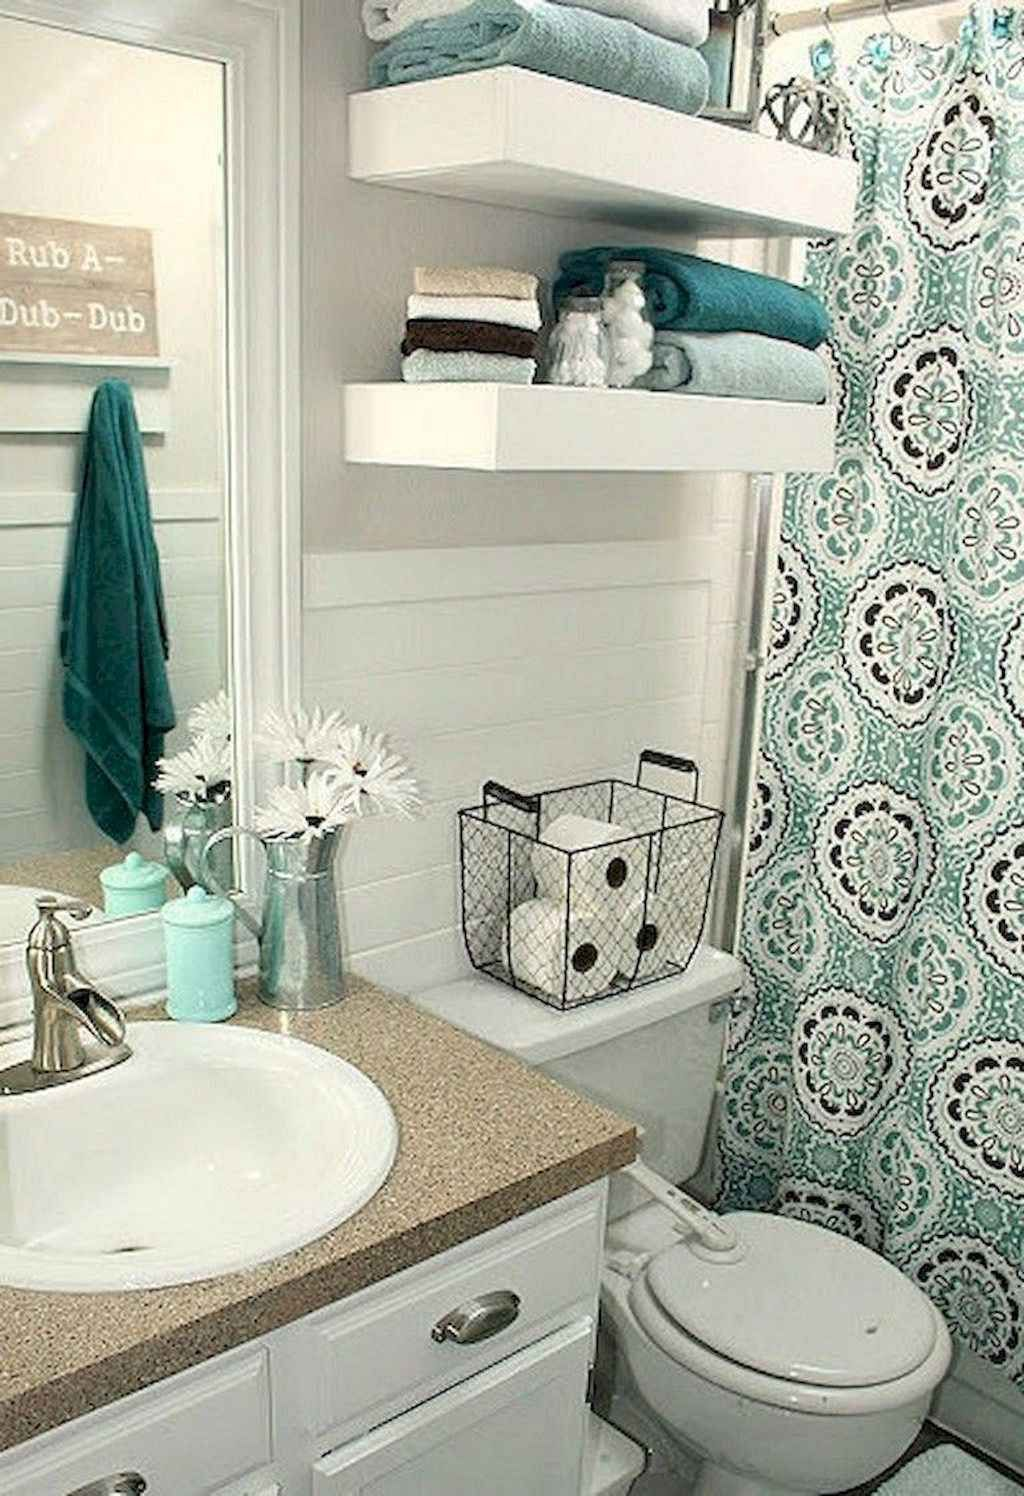 70 College Apartment Decorating Ideas on A Budget - redecorationroom,  #apartment #Budget #budgetPremierAppartement #College #decorating #Ideas #redecorationroom